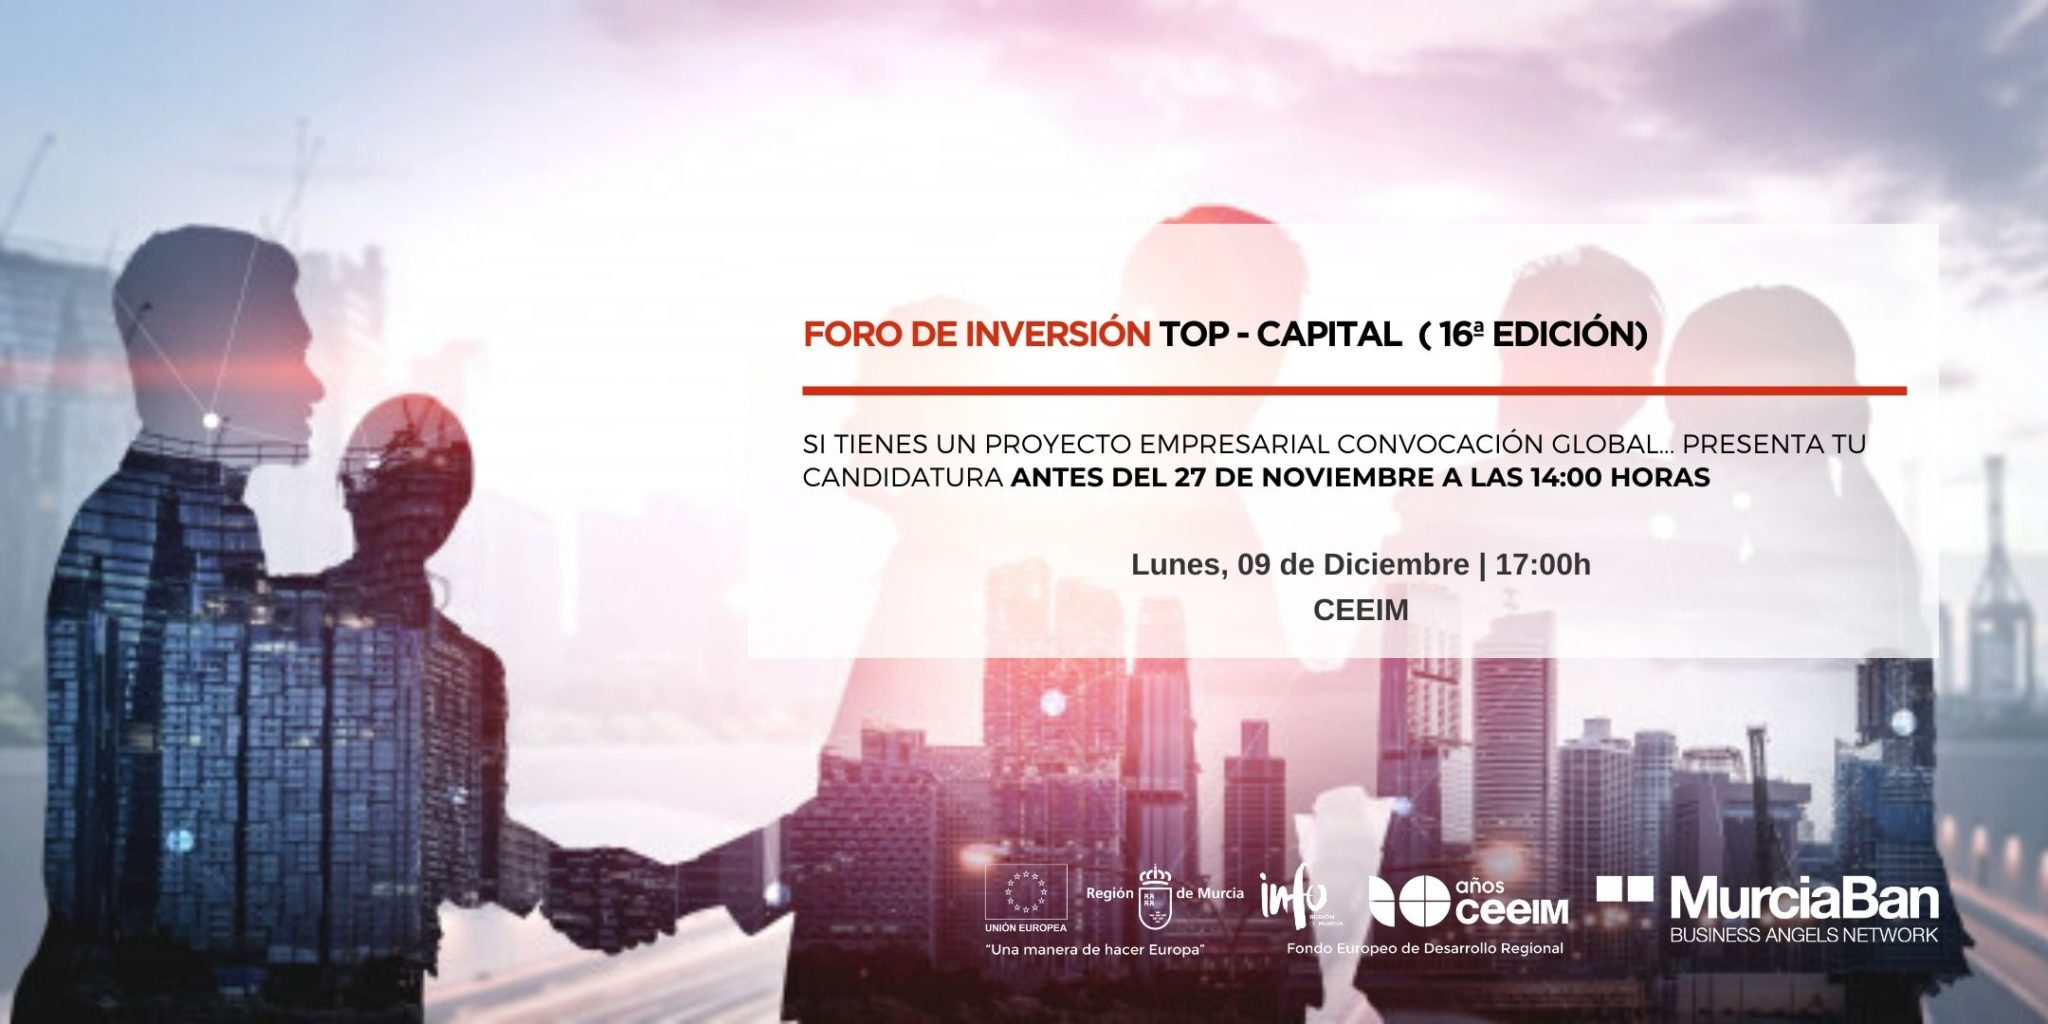 top-capital-ceeim-murcia-ban-2019